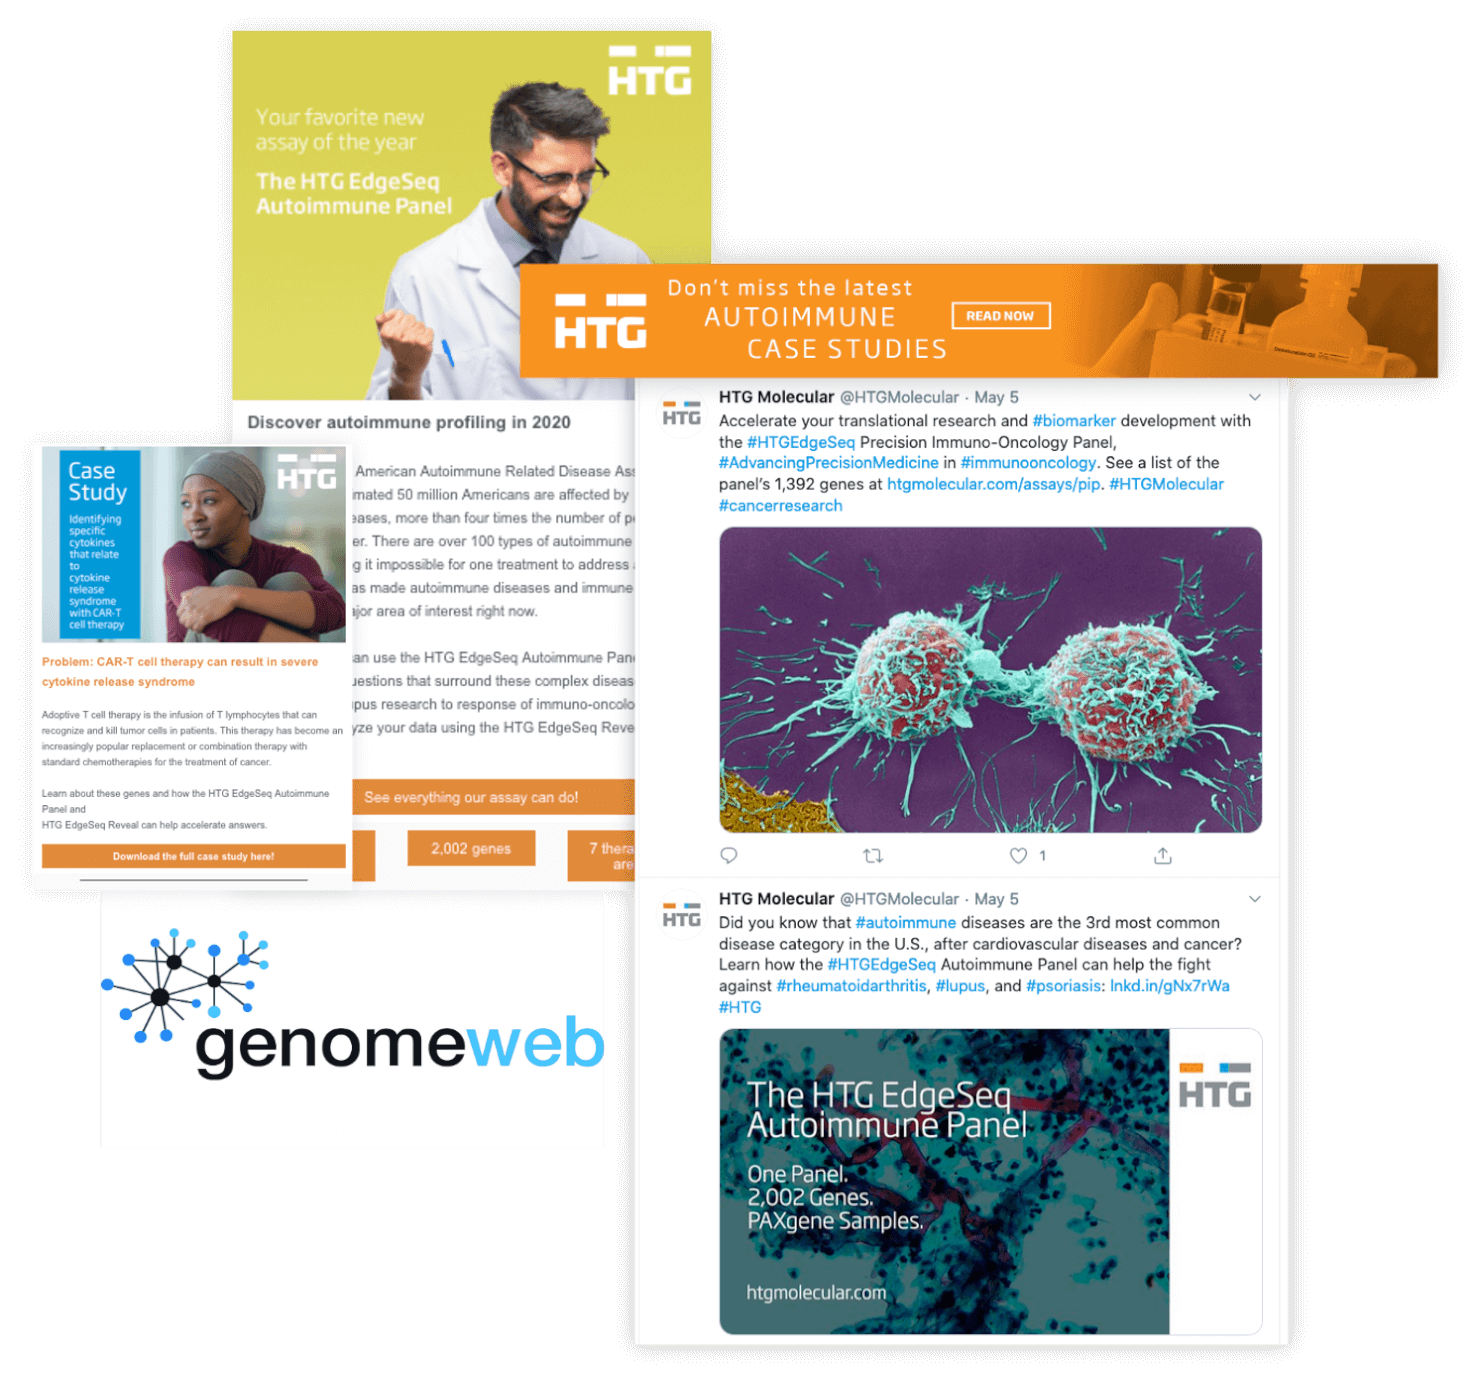 HTG Molecular campaign advertising assets, including a thumbnails of emails, tweets, and banner ad